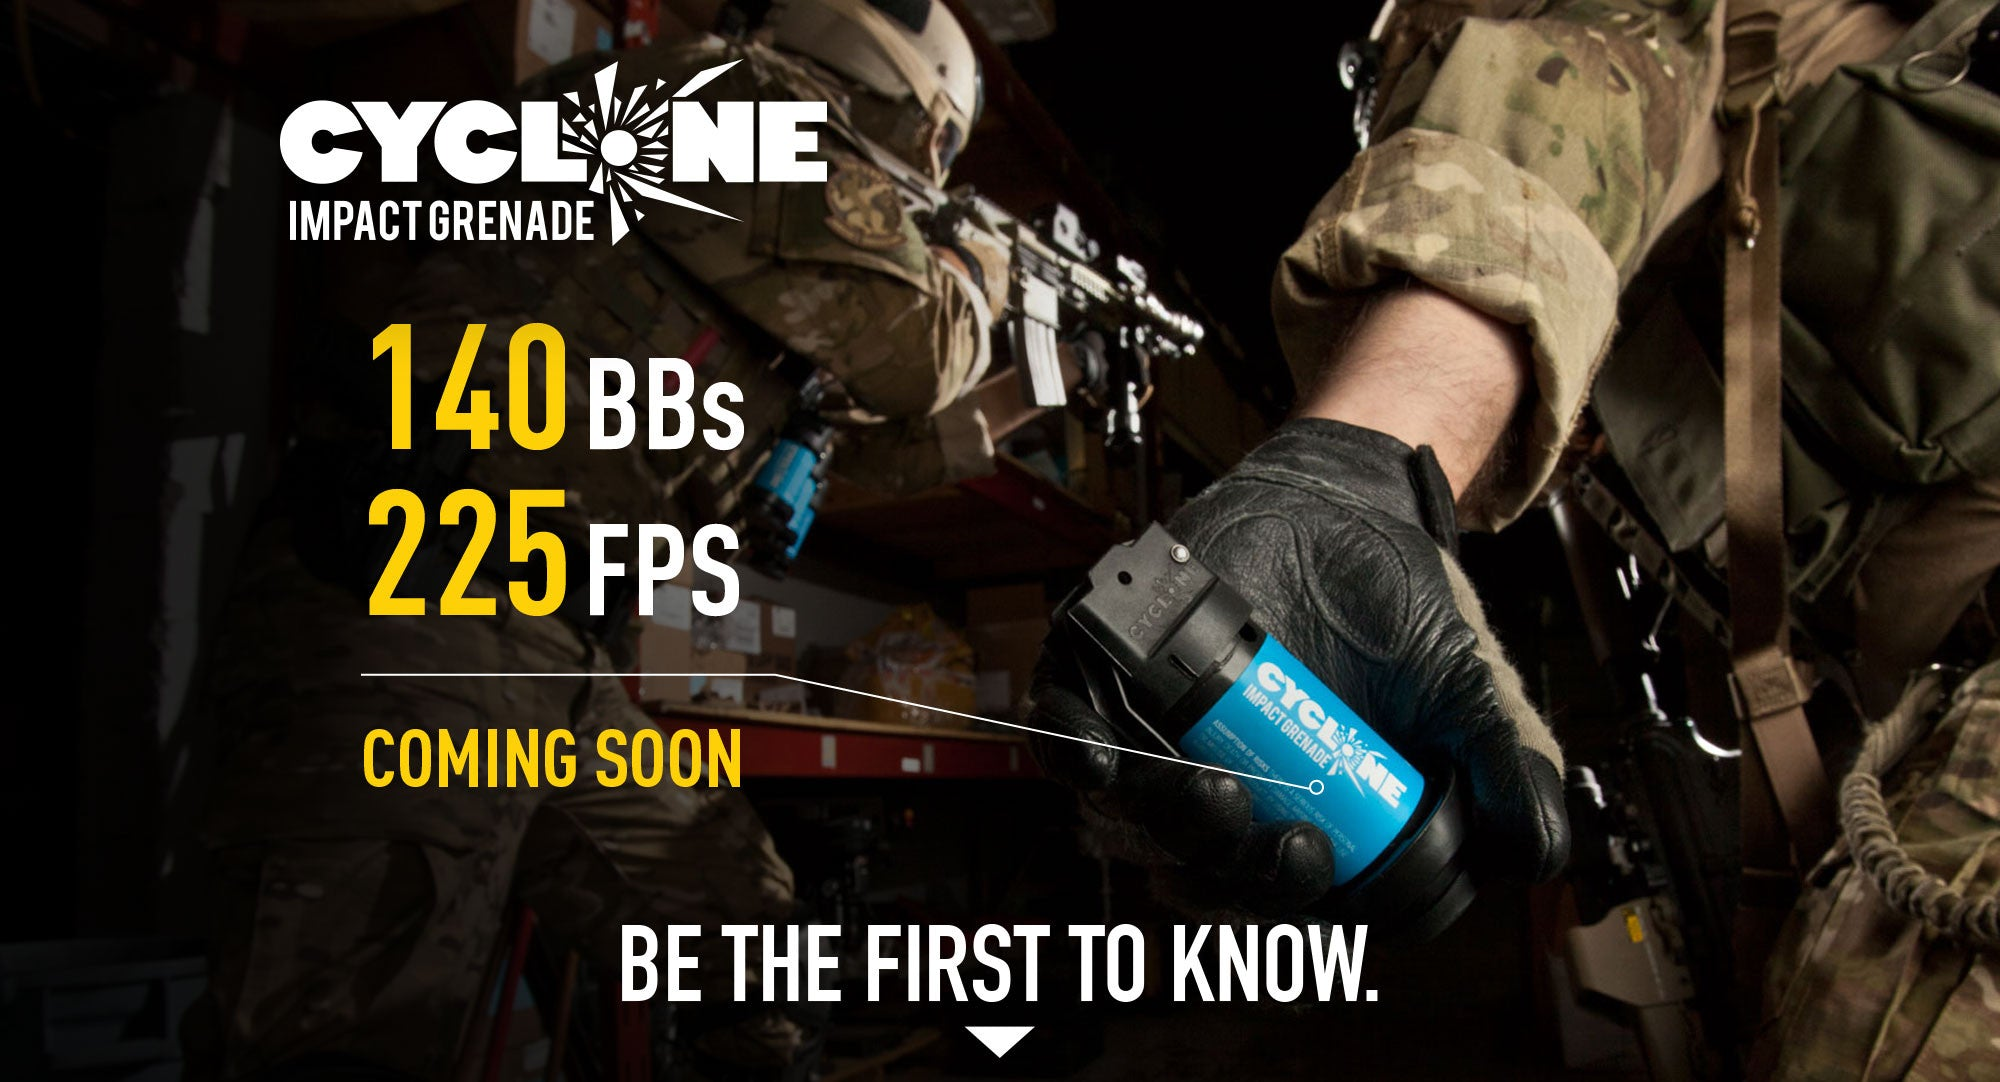 Airsoft Innovations' announces new and improved airsoft grenade